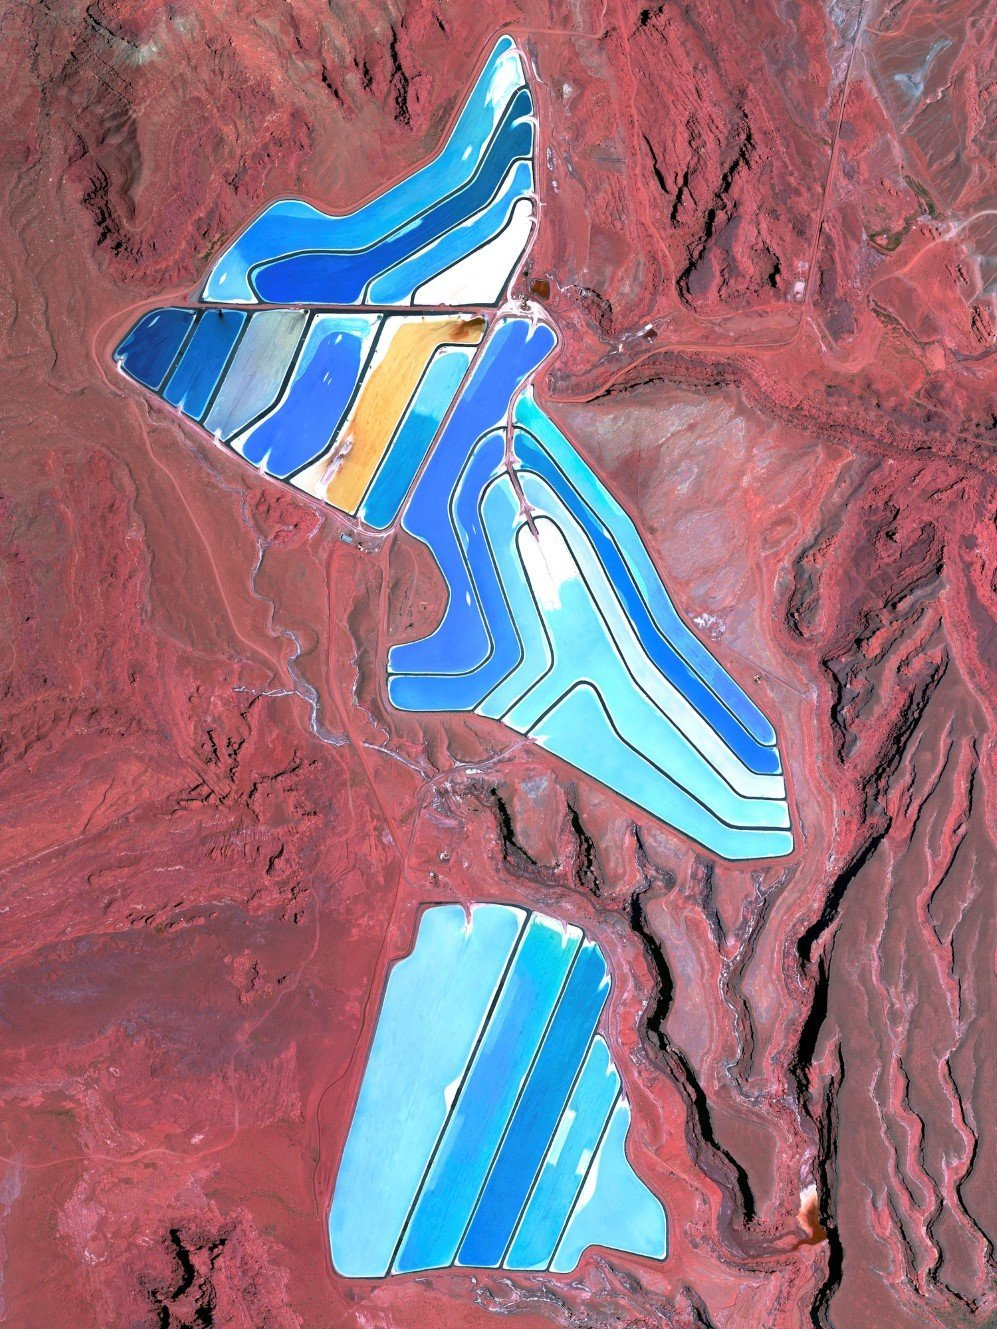 Evaporation ponds of Intrepid Potash mine